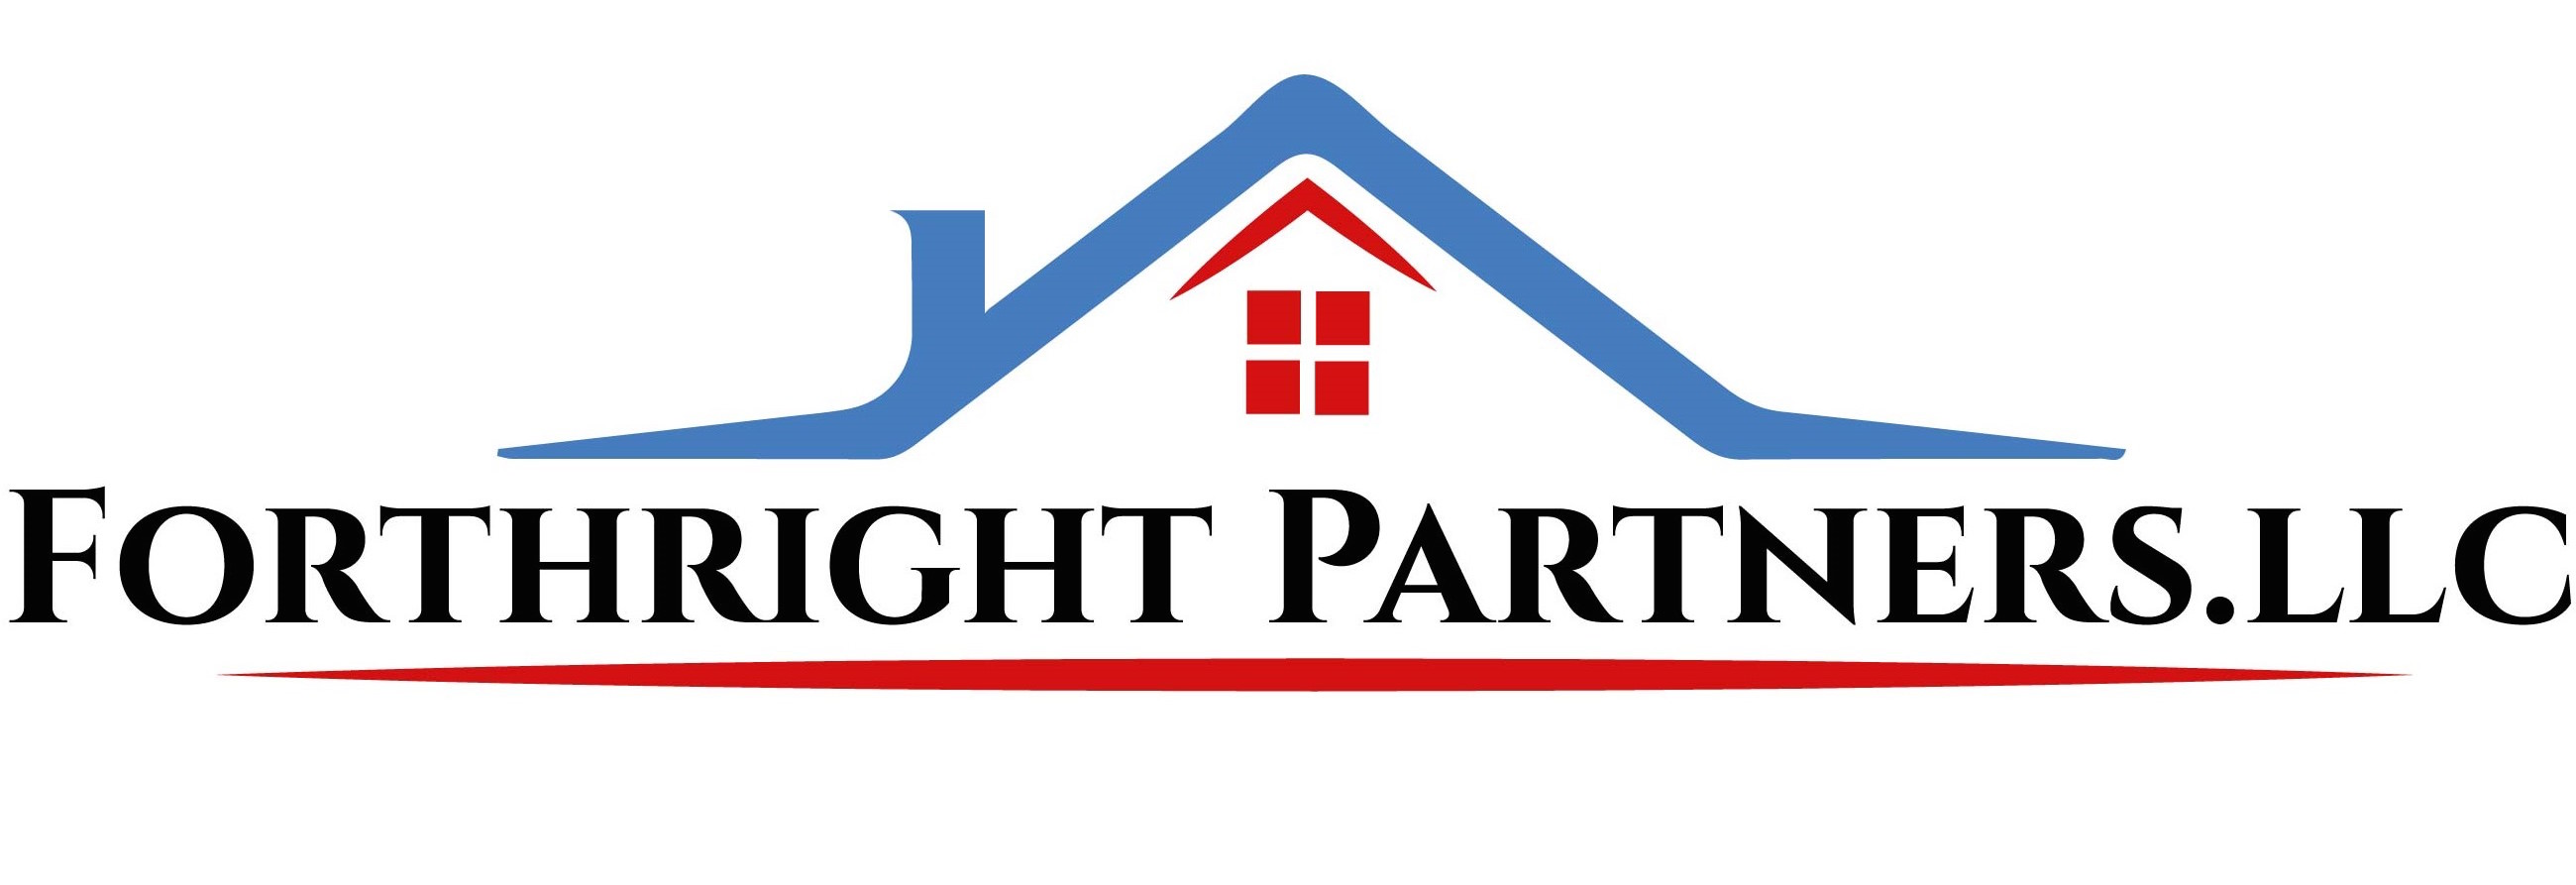 Forthright Partners LLC